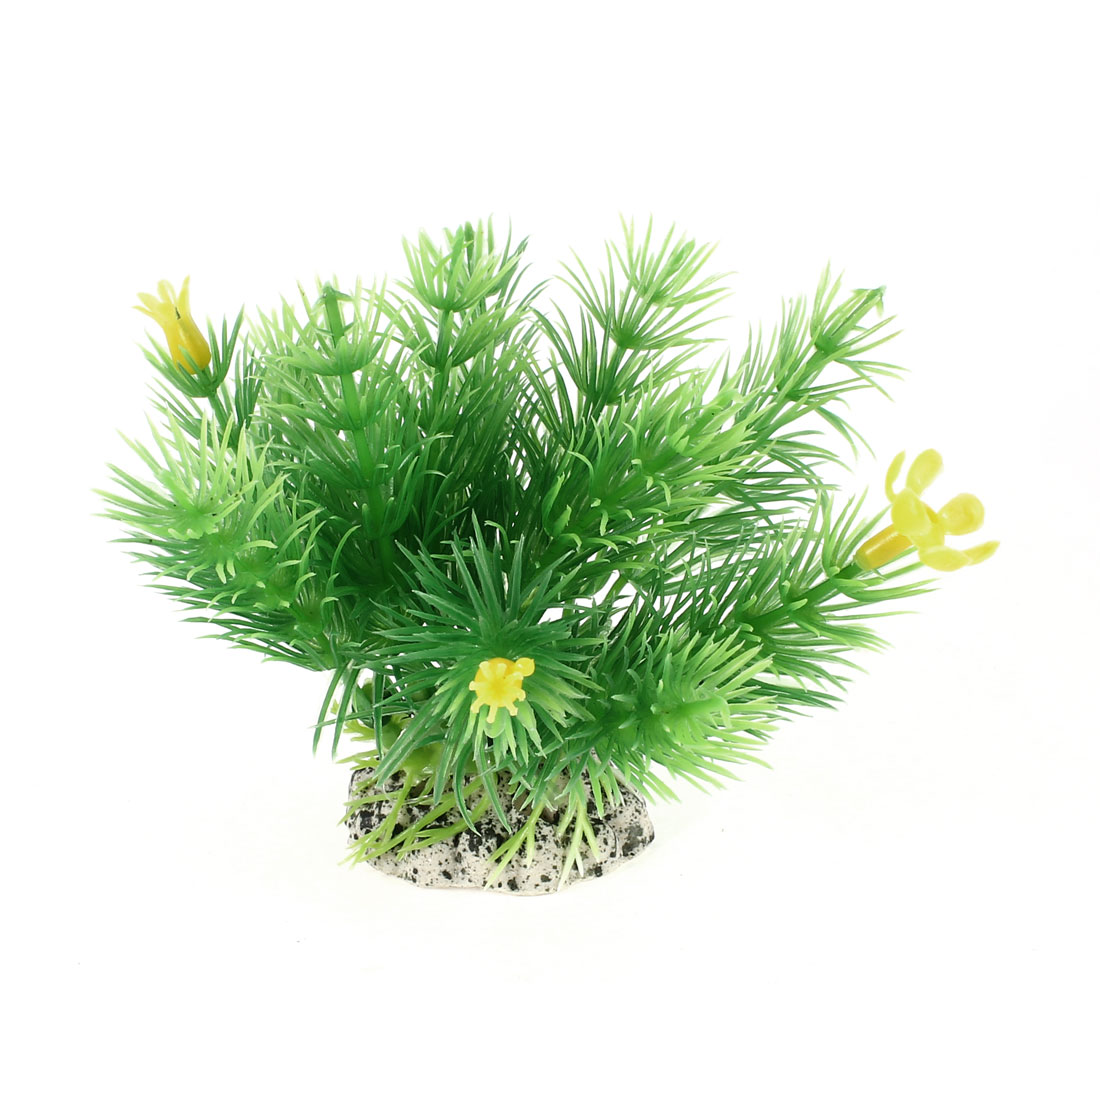 "Fish Tank Decor Green Plastic Artificial Aquatic Plant 3.3"" High"